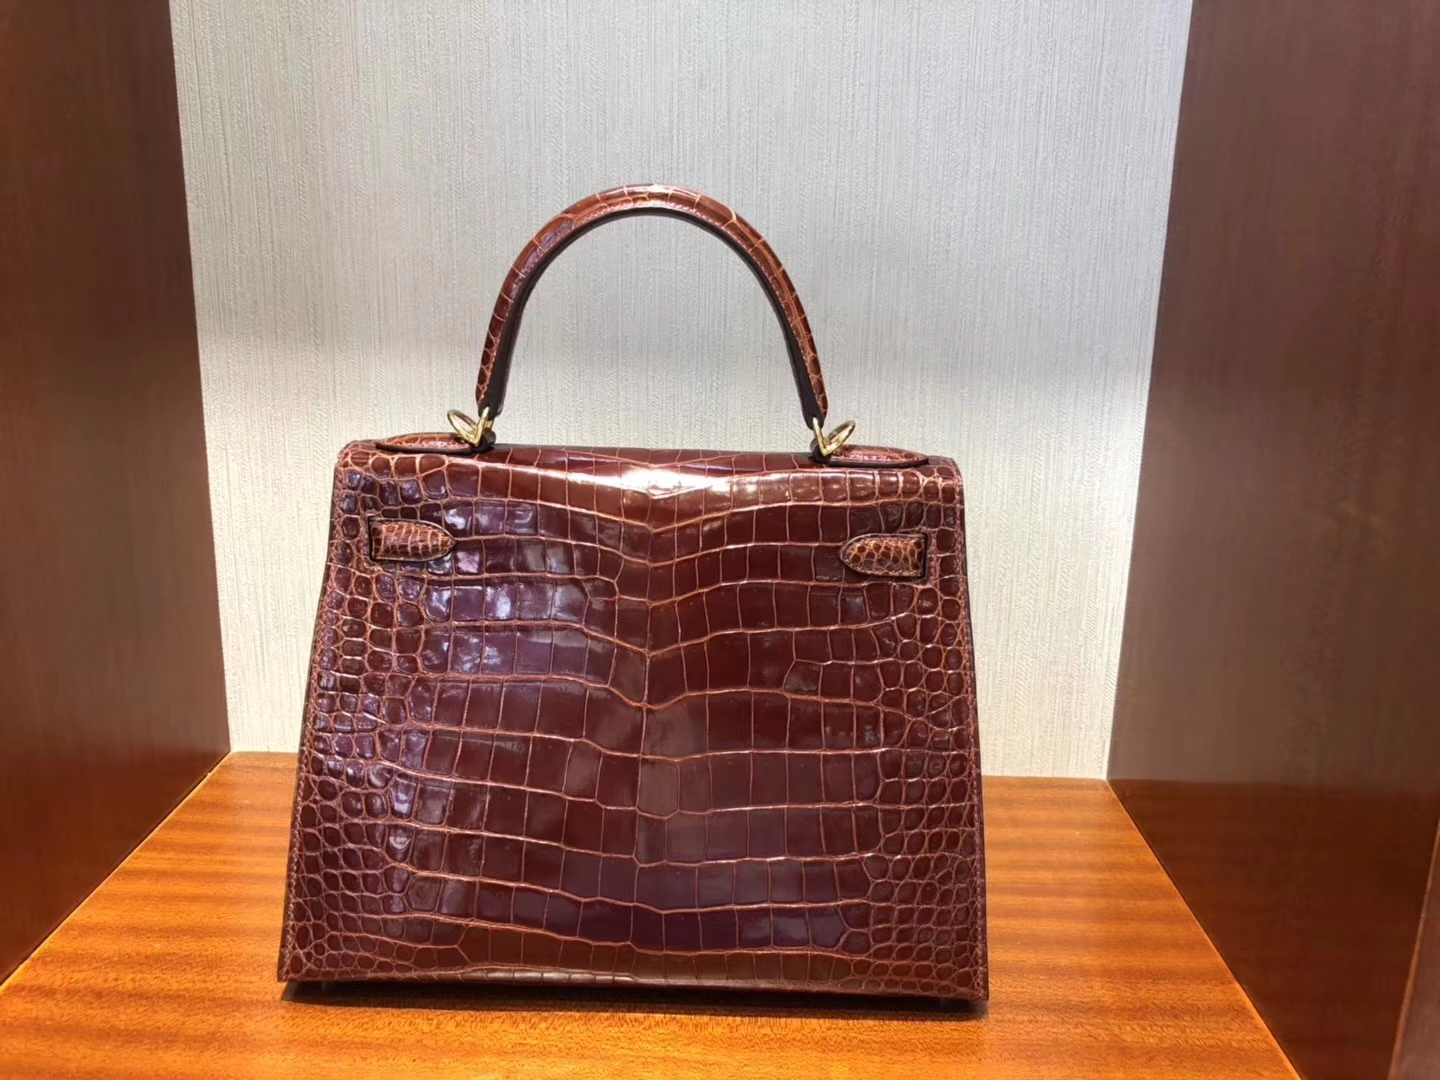 Noble Hermes Shiny Crocodile Kelly Bag28CM in CK31 Miel Gold Hardware